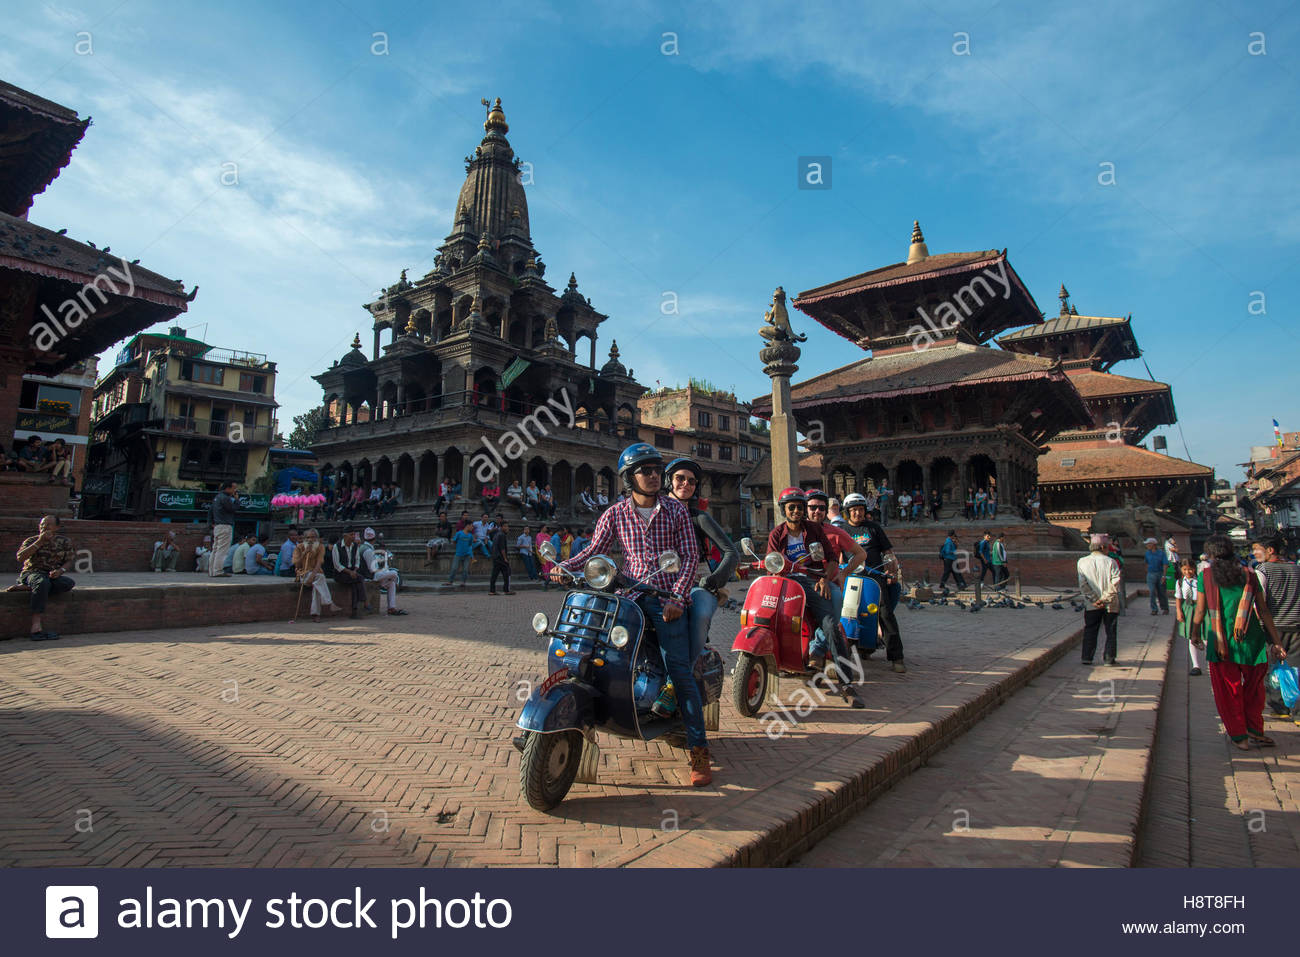 A group of tourists sit with their scooters in Kathmandu in Nepal - Stock Image